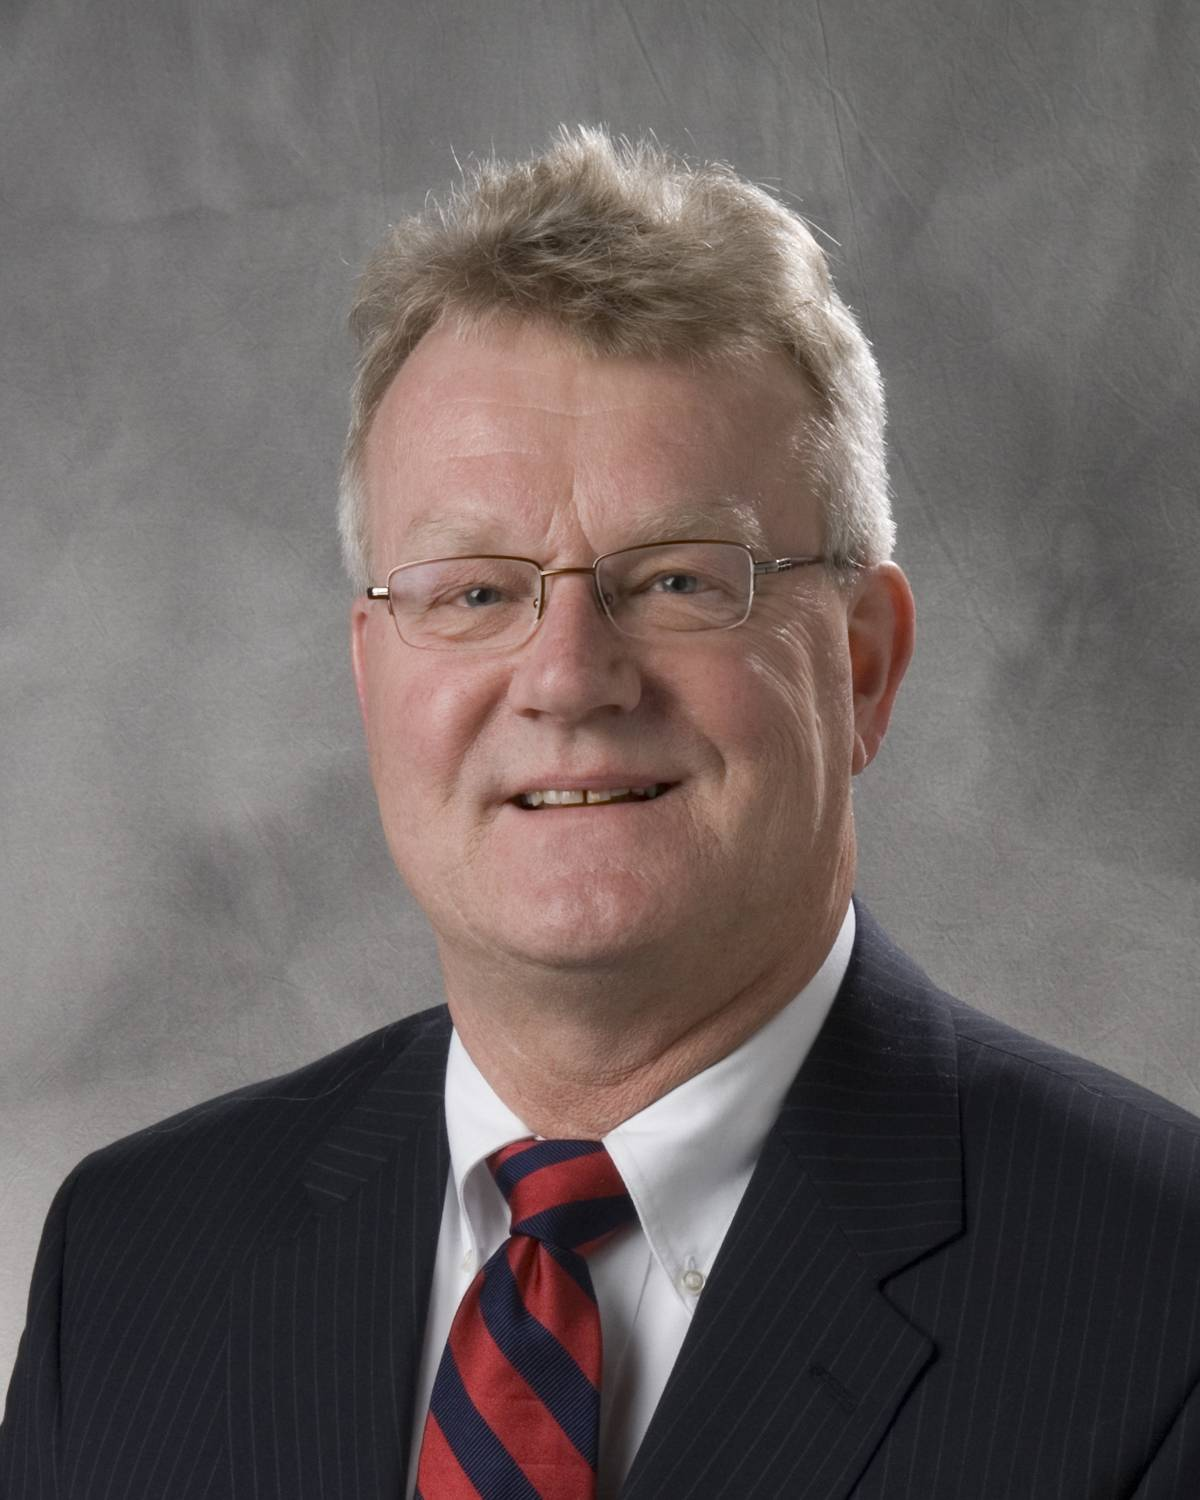 Richard A. Anderson, Grayslake, CLC Board of Trustees member